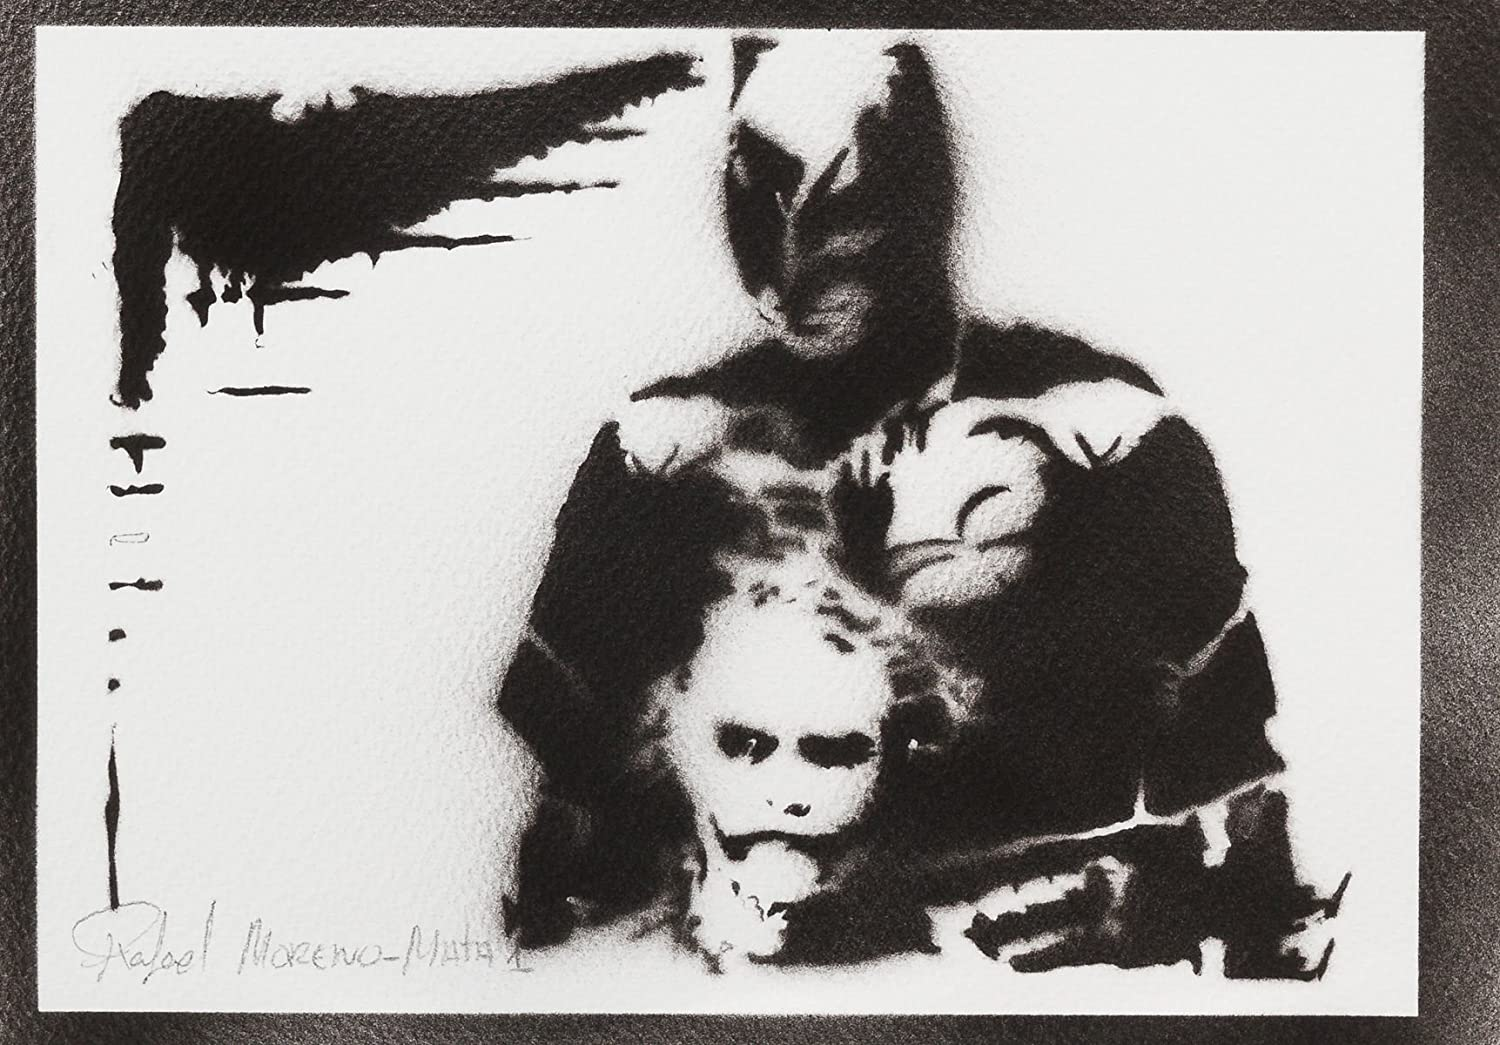 Batman E Joker Handmade Street Art - Artwork - Poster